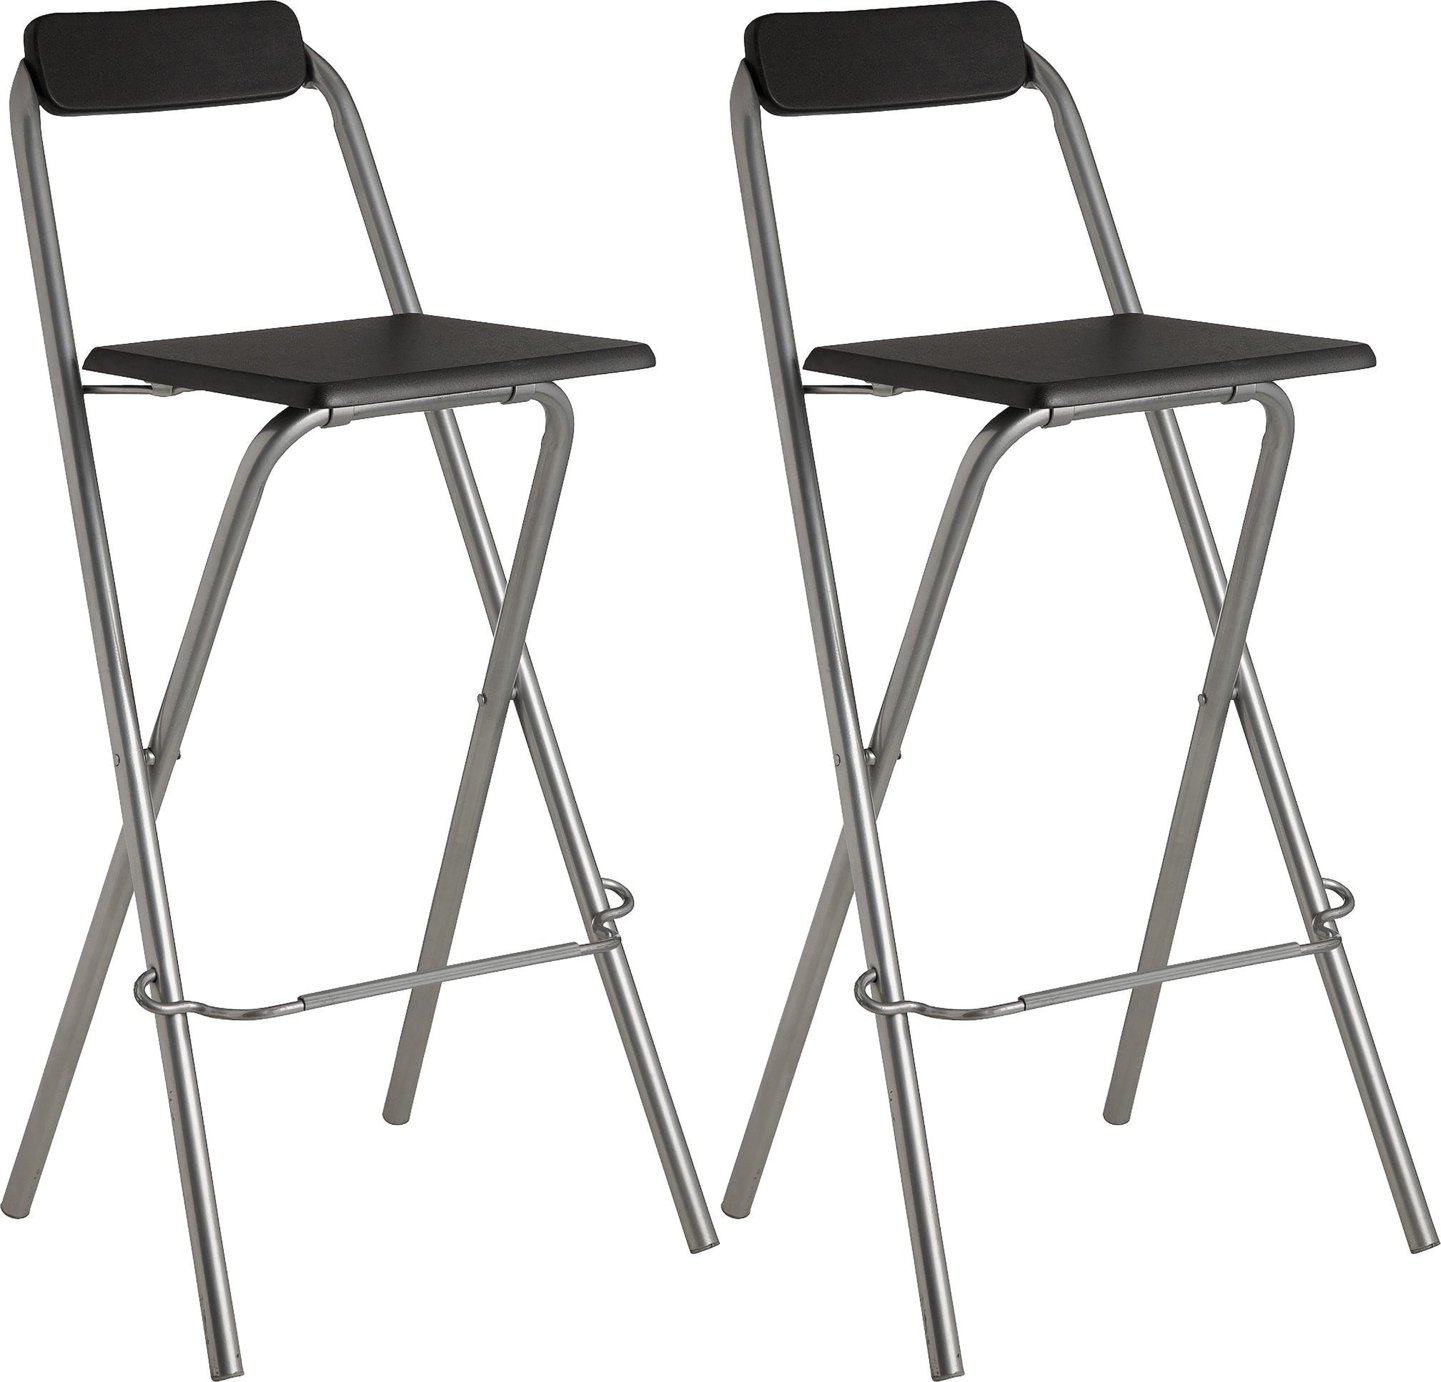 Simple Value Theo Pair Of Folding Bar Stools 6000262 Argos Price Tracker Pricehistory Co Uk